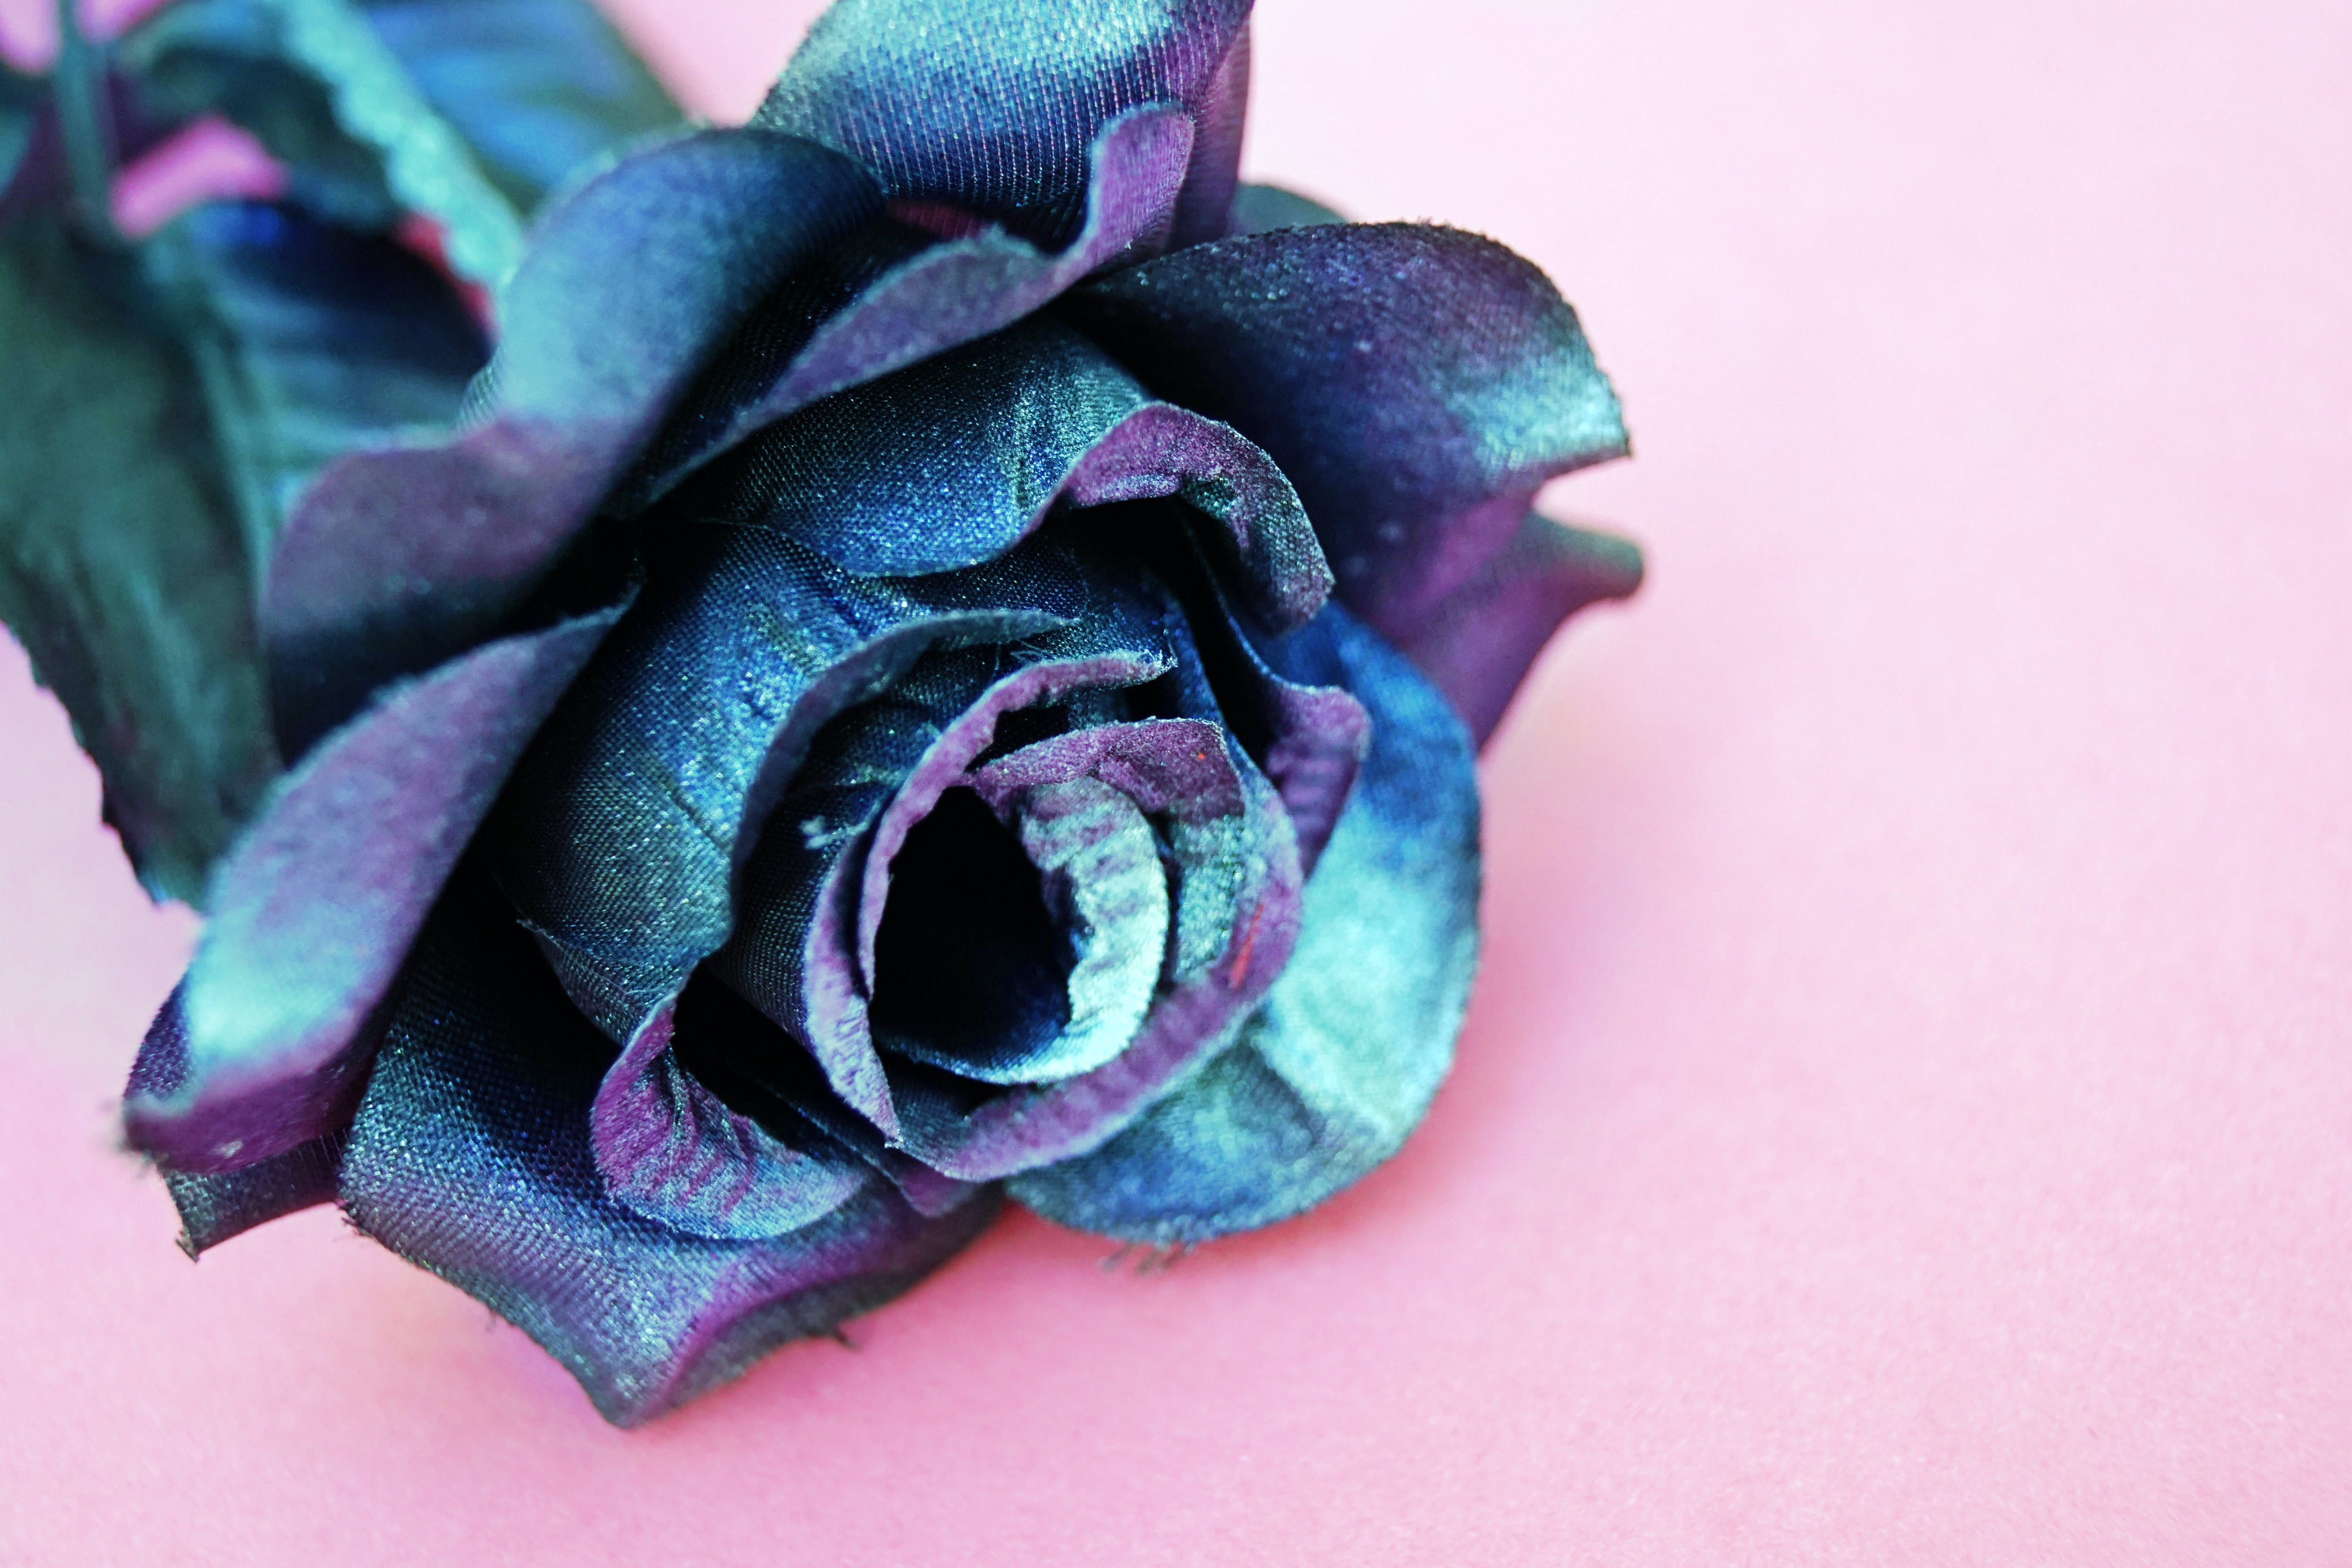 Blue and Purple Silk Rose Flower on Pink Surface